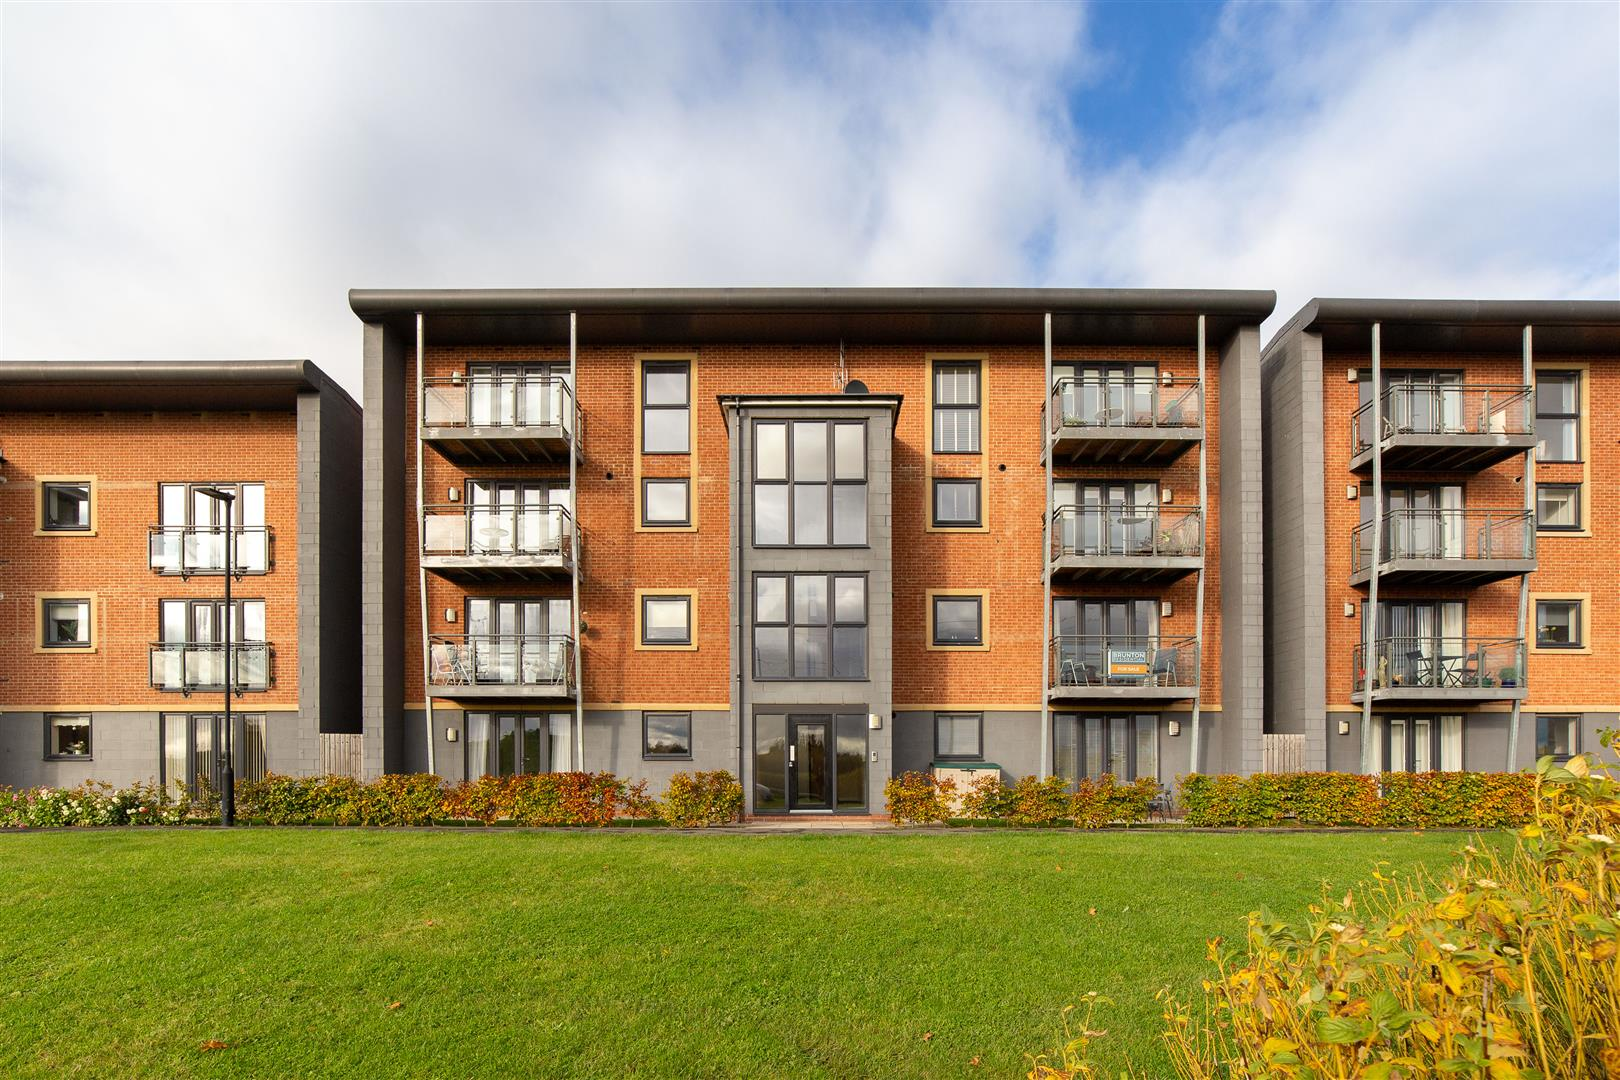 2 bed flat for sale in Great Park, NE13 9BP 0